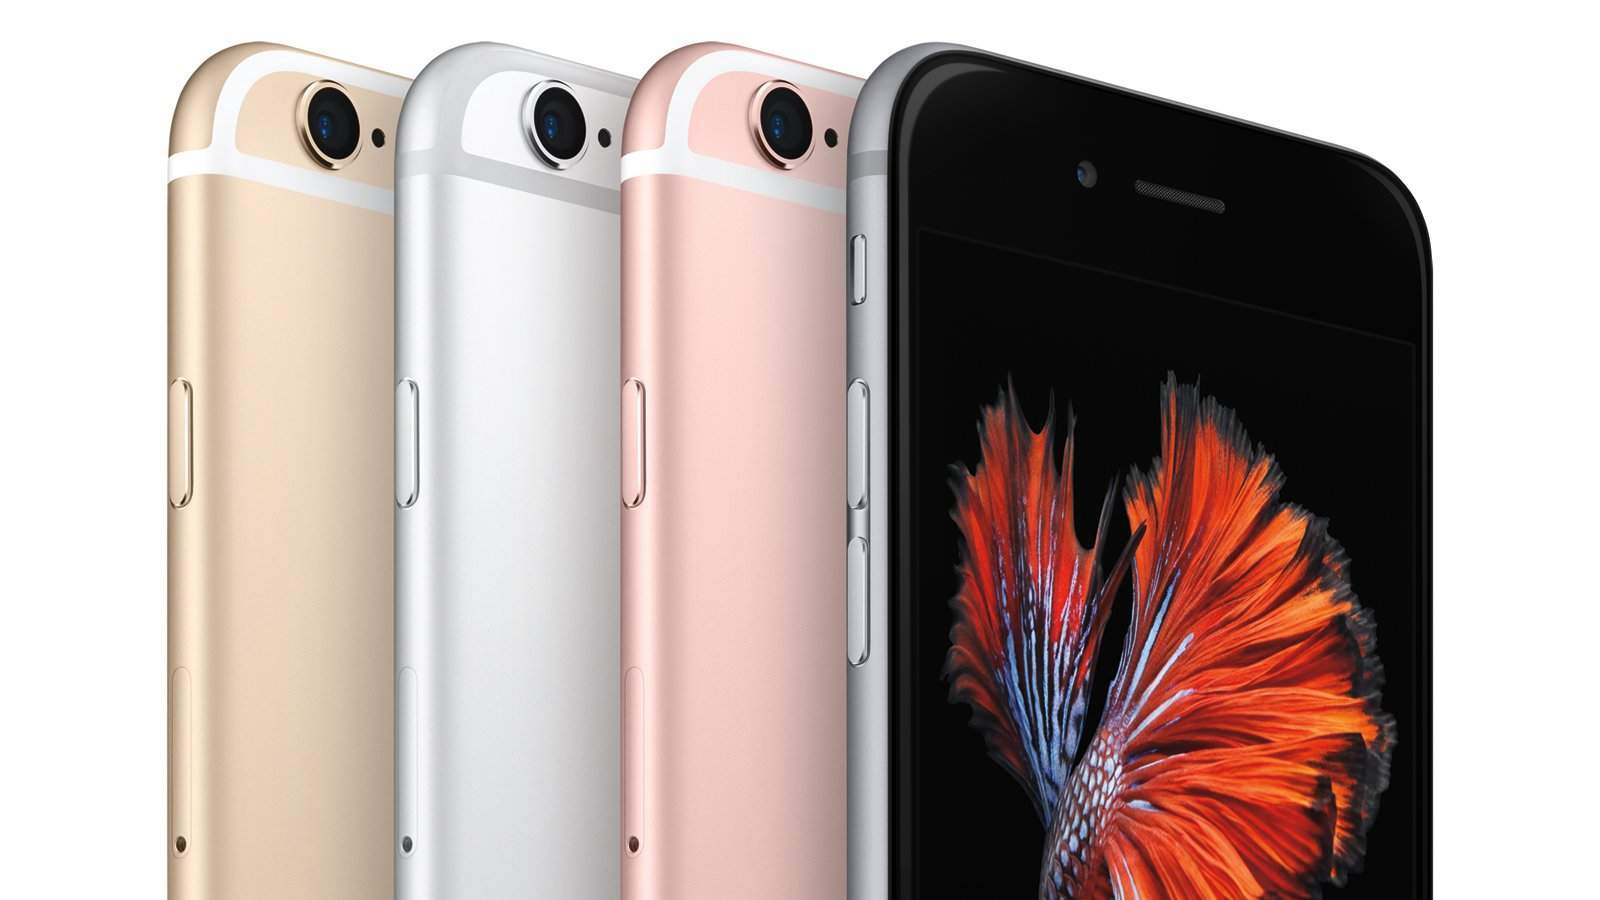 when does iphone 6s come out iphone 6s prices everything you need to 1577